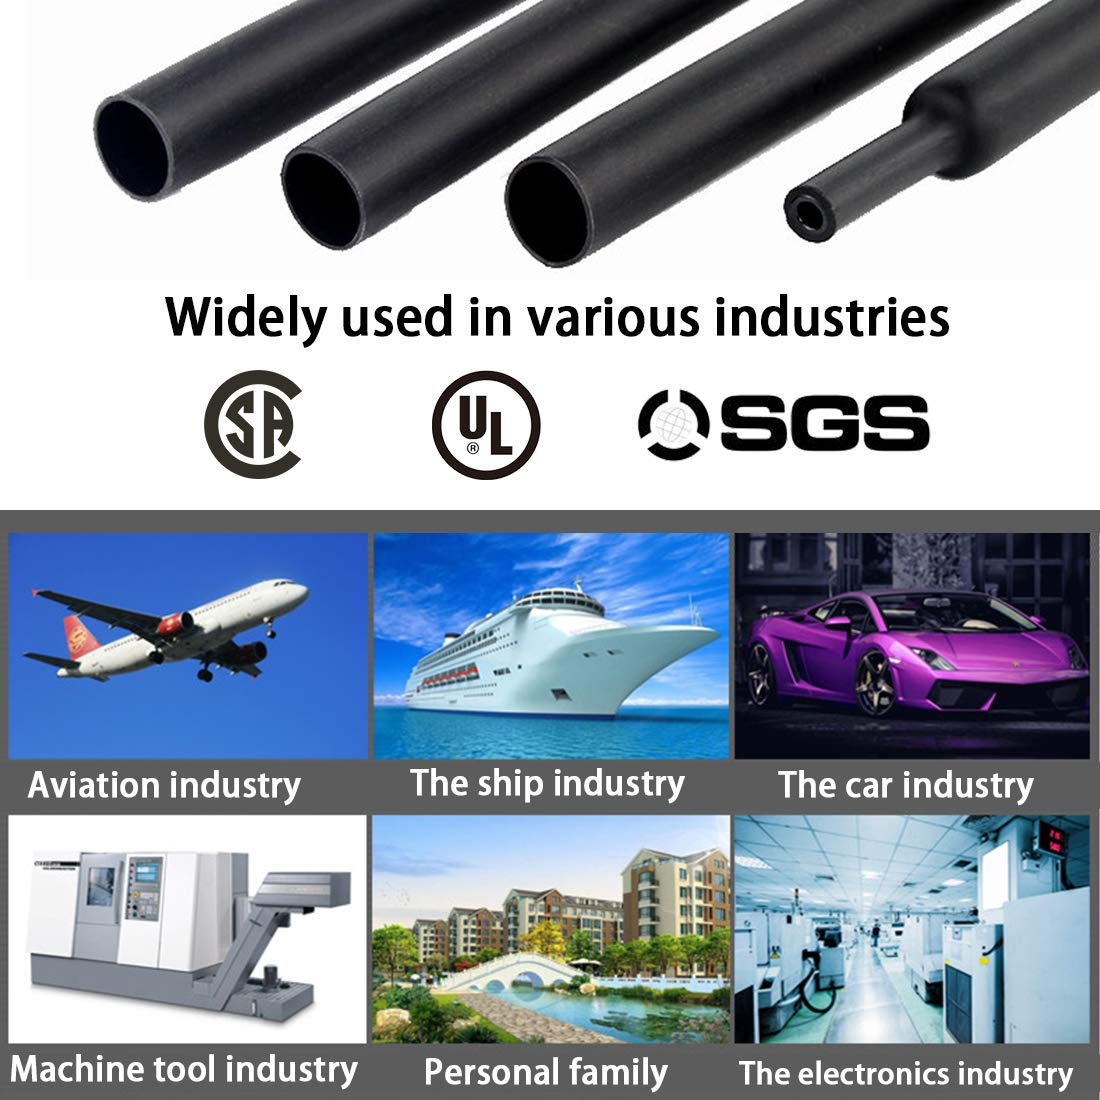 3//4 19.1mm Dual Wall Heat Shrink Tubing 3:1 Ratio Heat Activated Adhesive Glue Lined Marine Shrink Tube Wire Sleeving Wrap Protector Black 5Ft